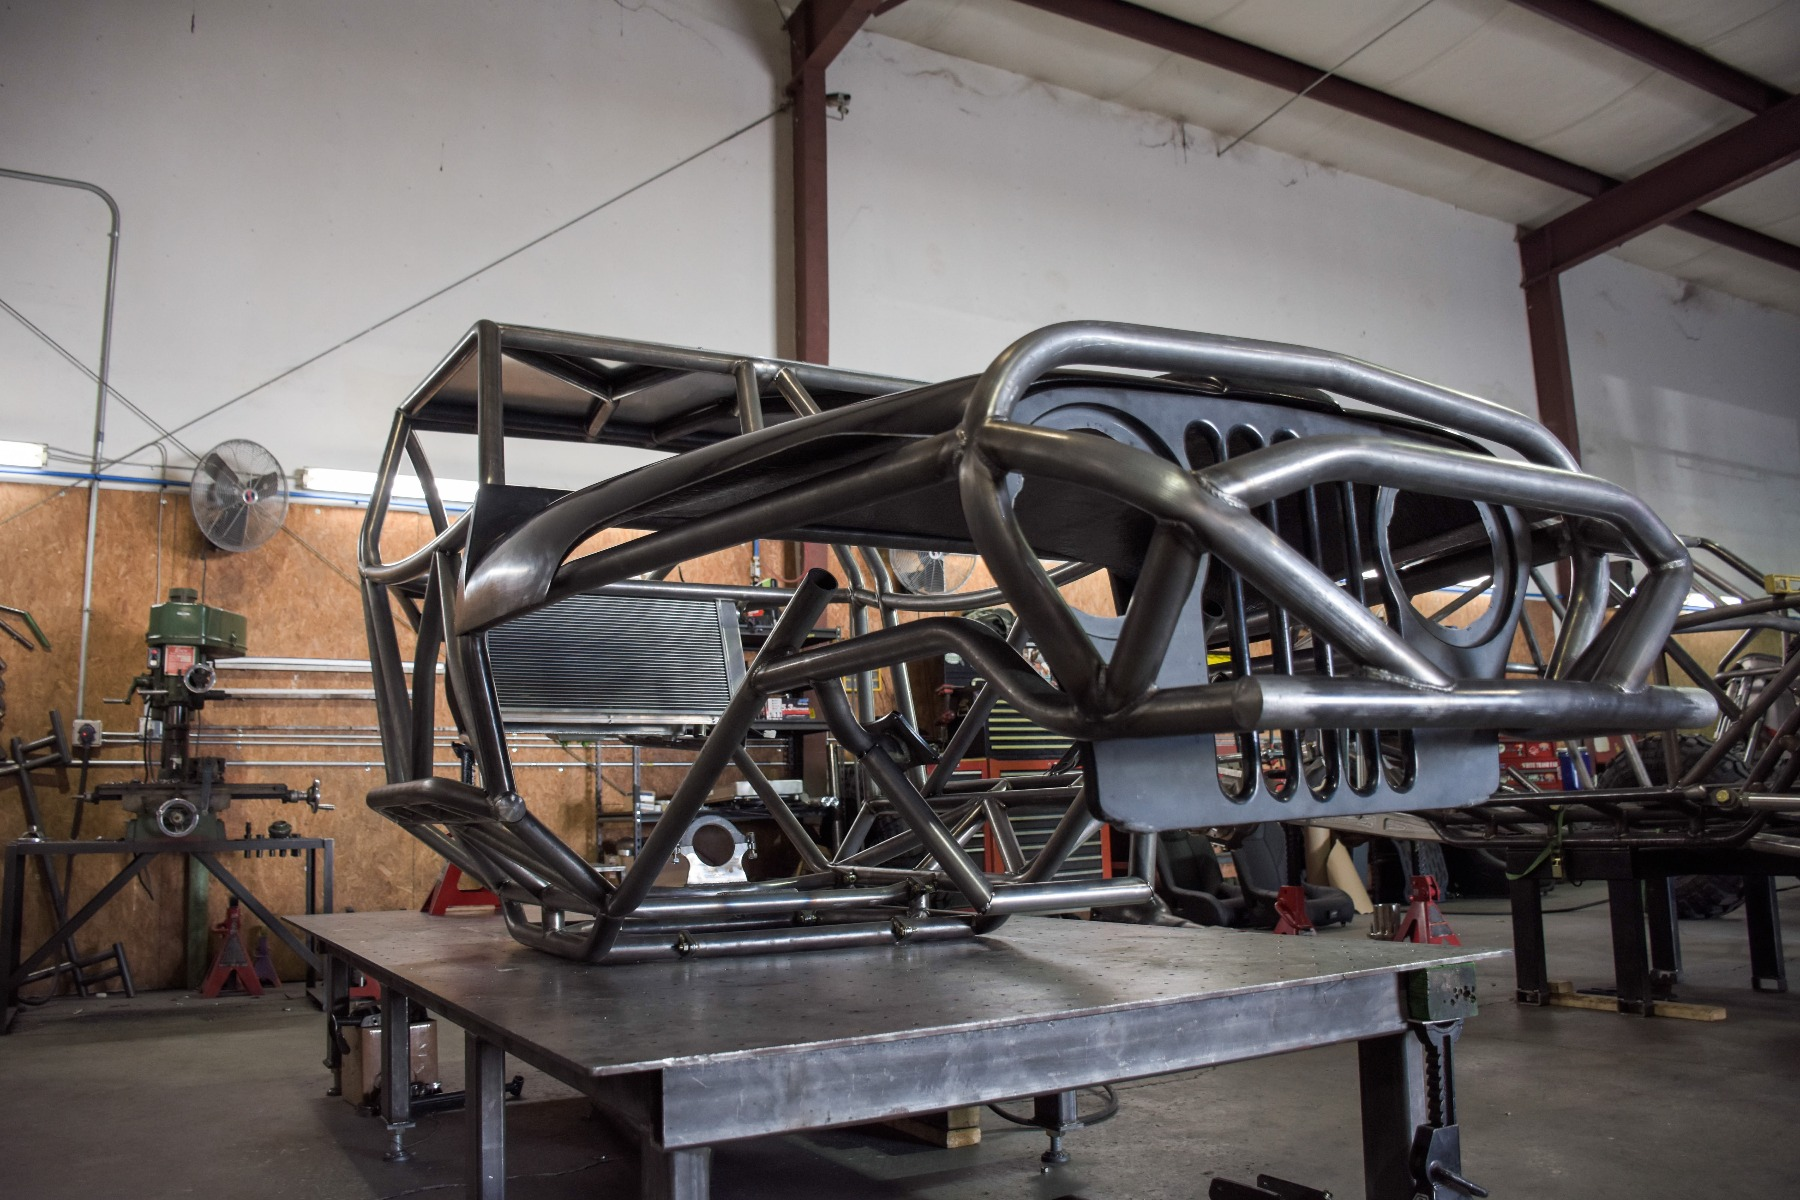 Wide Open Design Evolution Rock Crawler chassis with jeep hood and grill front 8